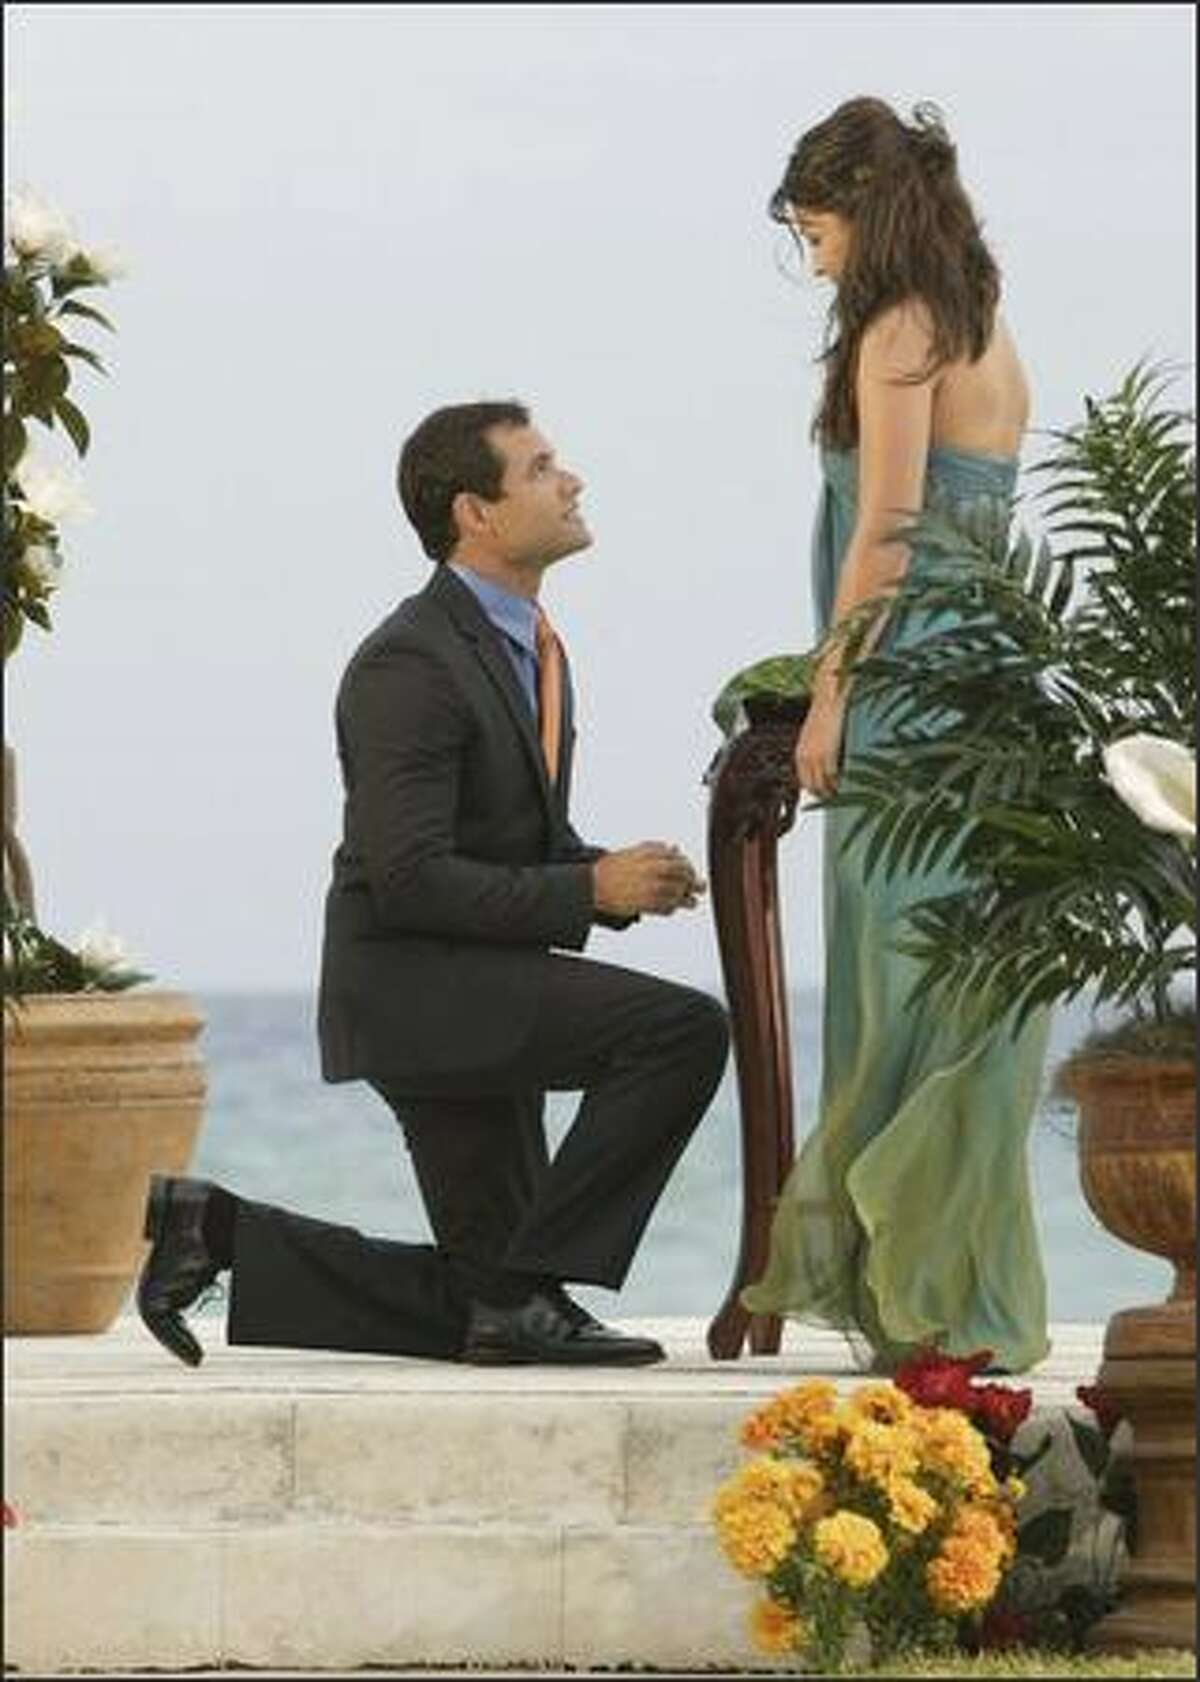 Jason Mesnick of Kirkland proposes to DeAnna Pappas on ABC's